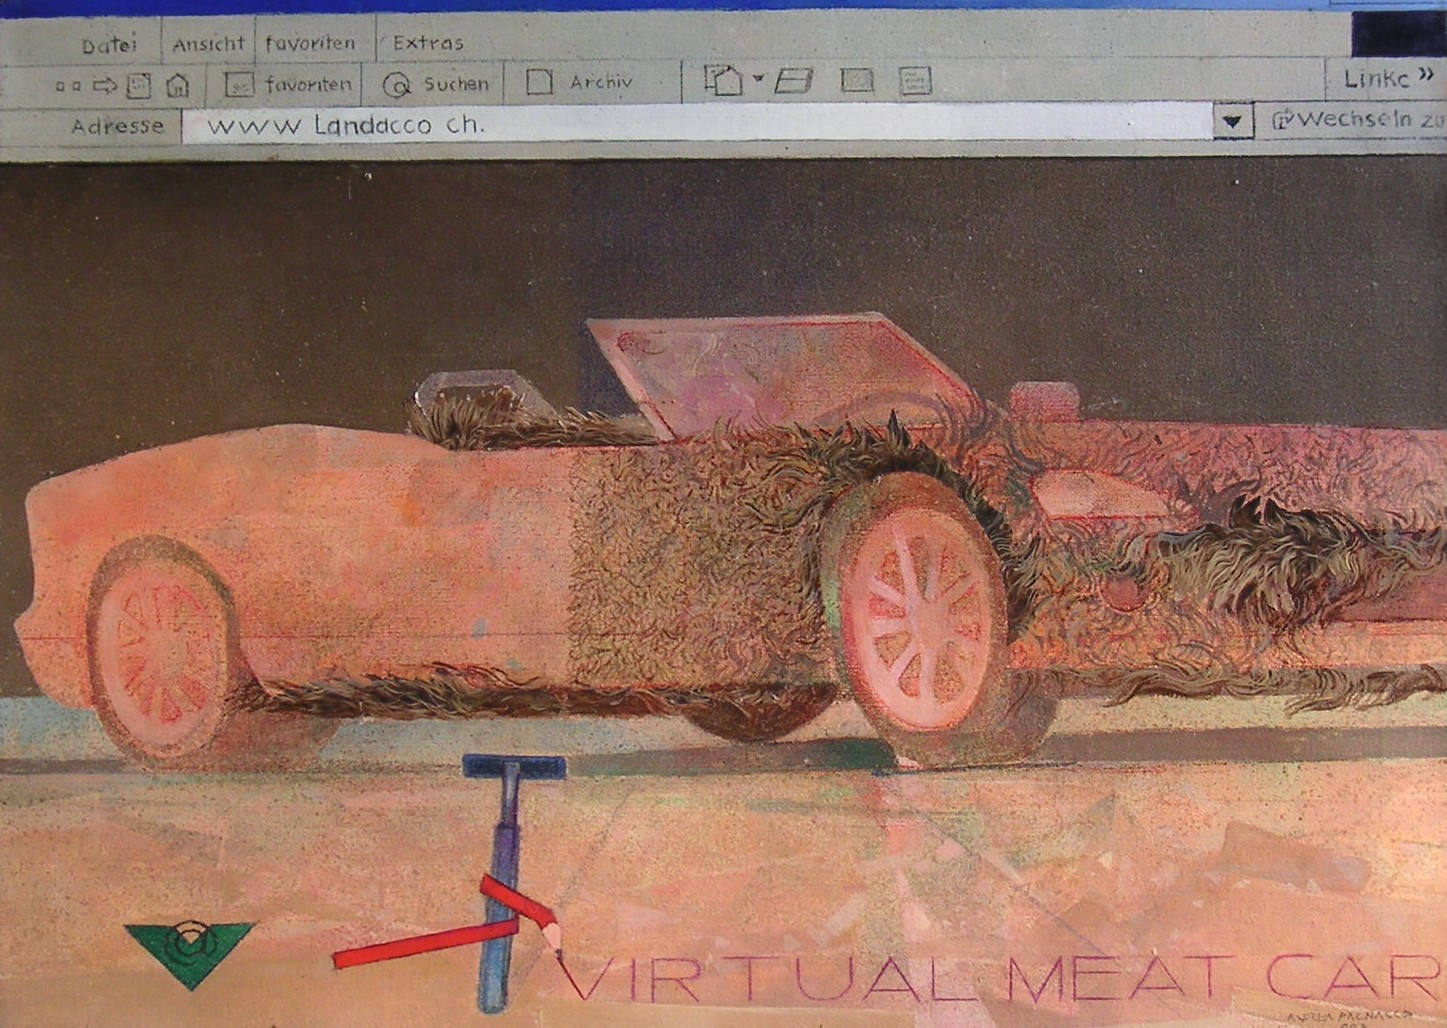 Andrea Pagnacco, Virtual Meat Car, tecnica mista su carta, cm 50 x 70